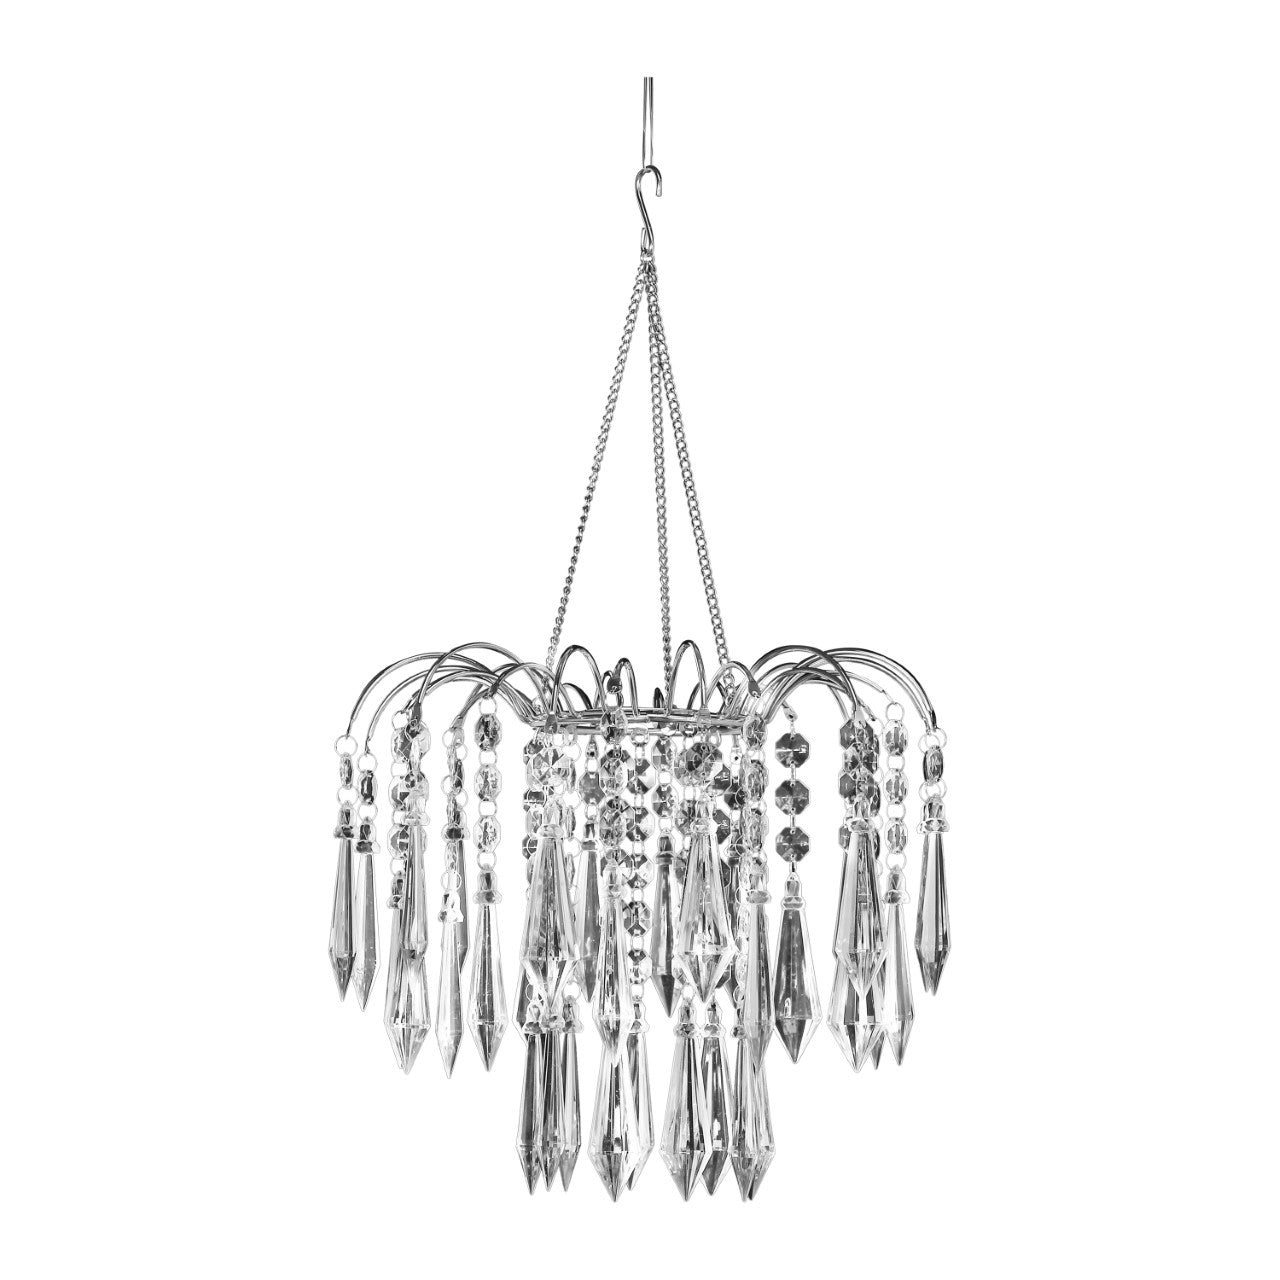 Chandeliers lamps that bohemian girl clear acrylic ornaments beaded chandelier arubaitofo Image collections